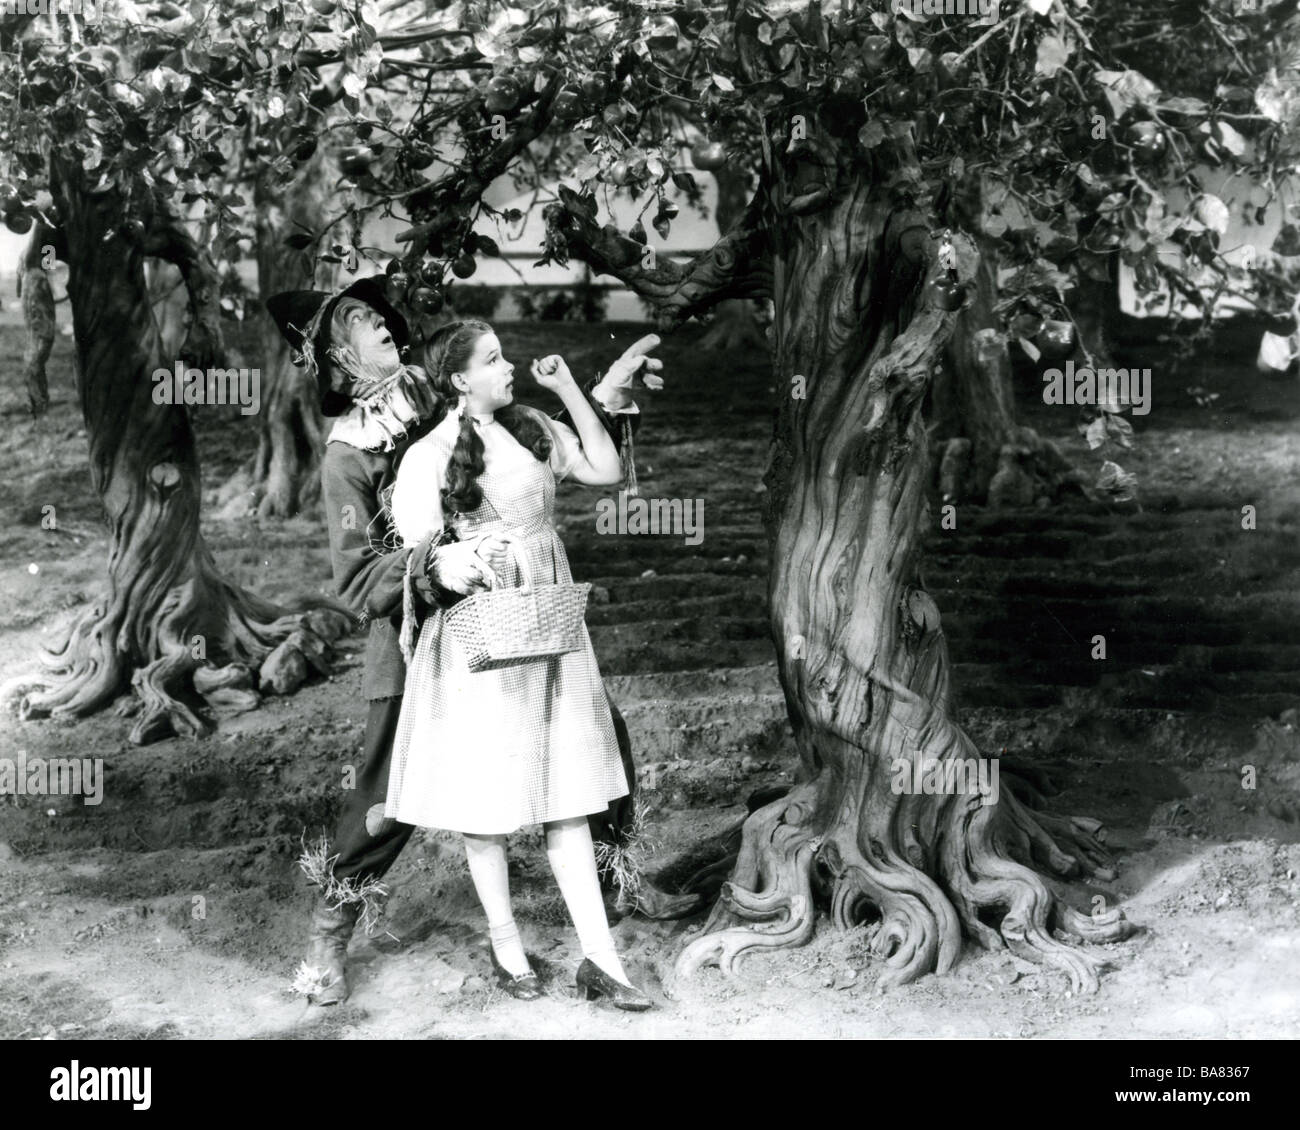 THE WIZARD OF OZ  1939 MGM film - Stock Image